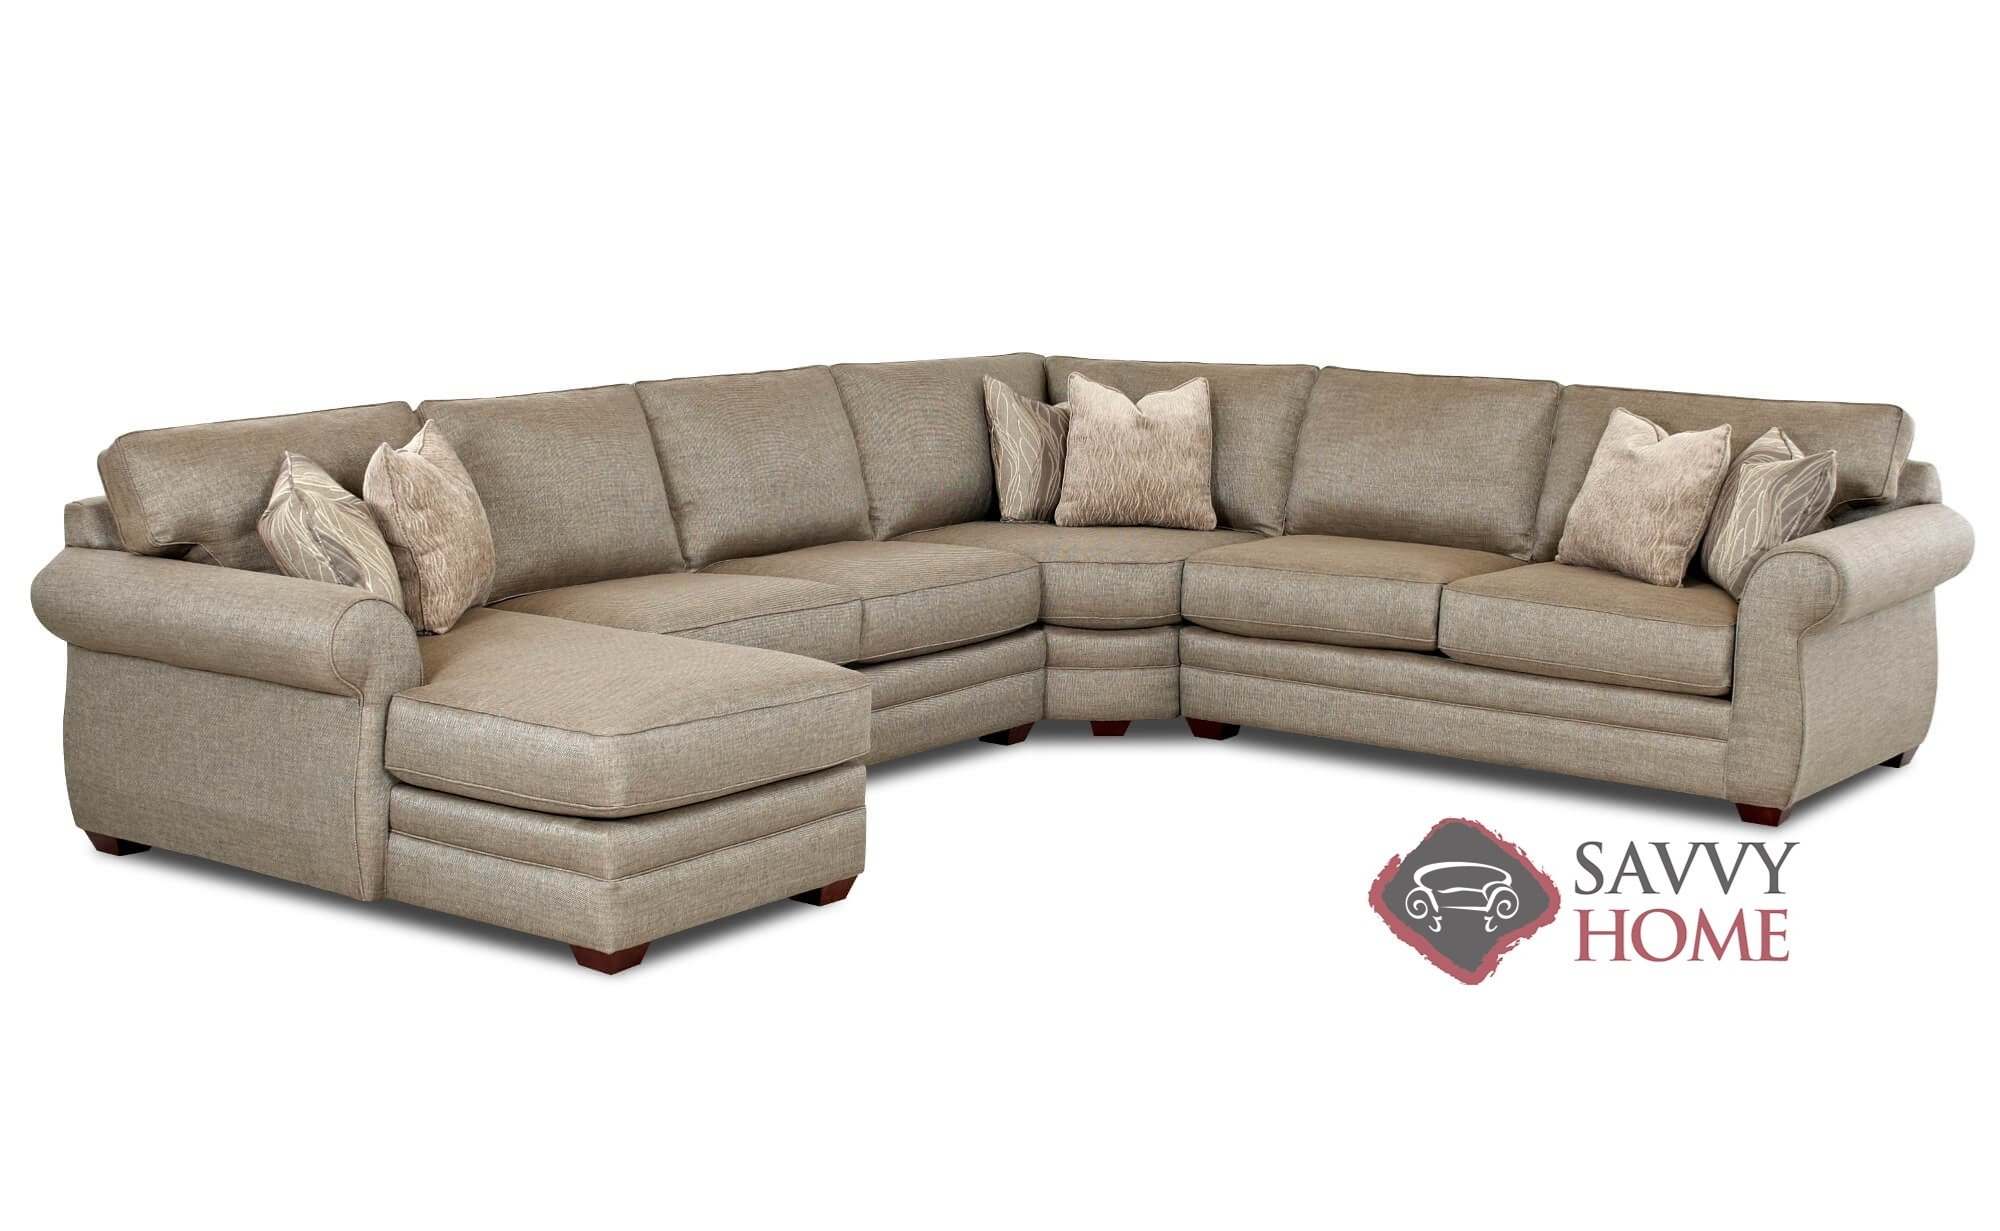 Peachy Canton True Sectional Full Sleeper Sofa With Chaise Lounge By Savvy Onthecornerstone Fun Painted Chair Ideas Images Onthecornerstoneorg